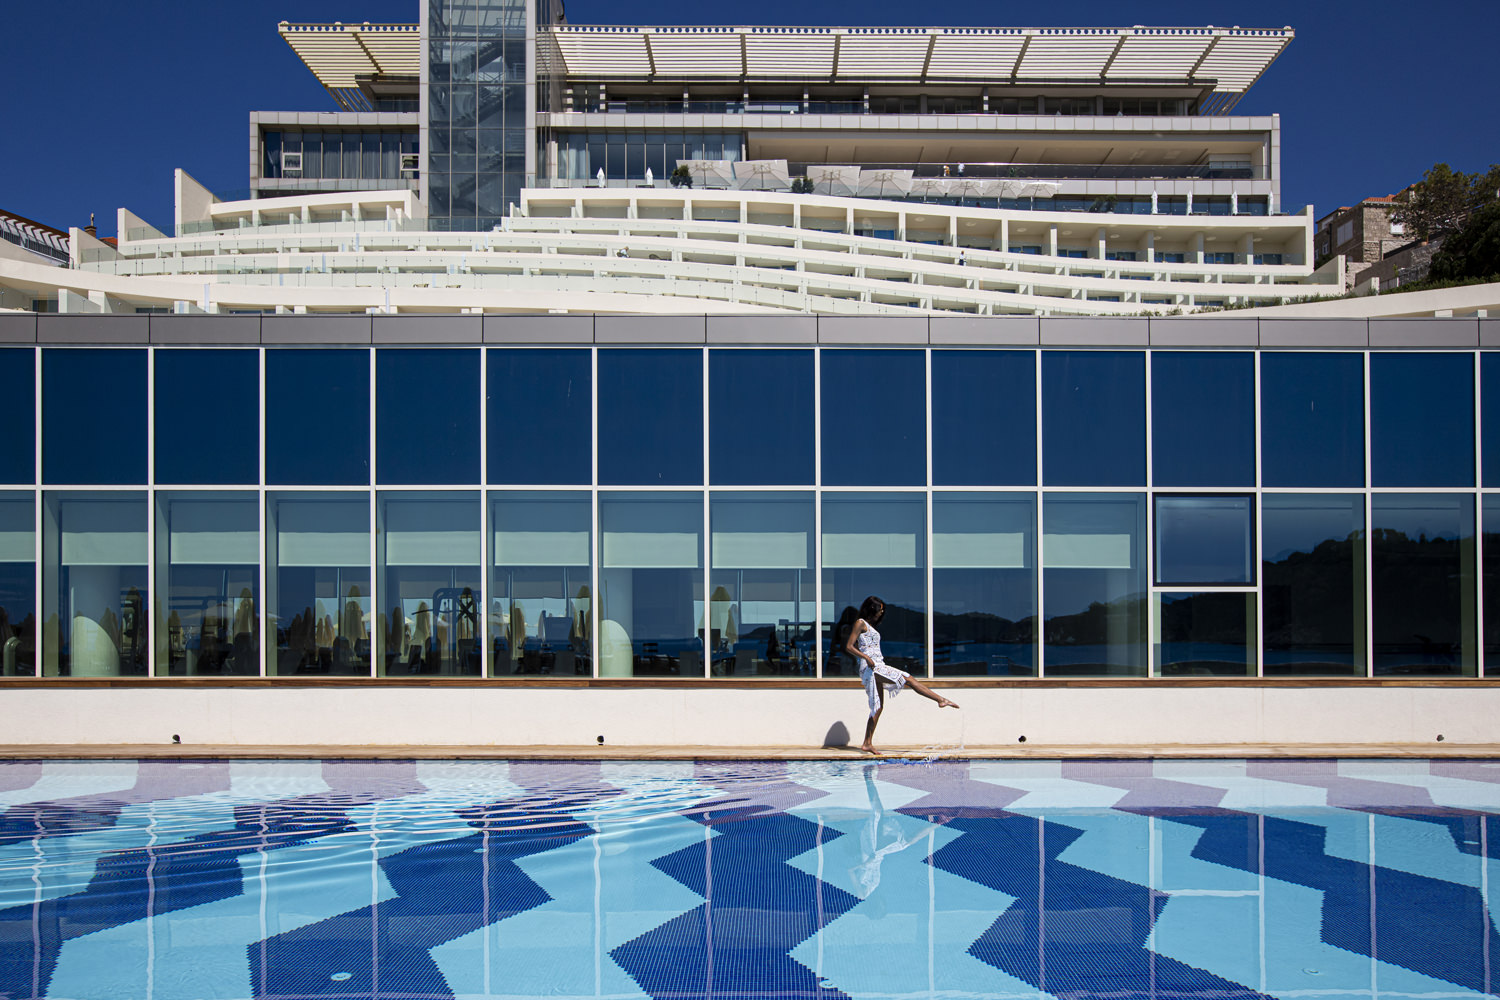 Rixos Premium Dubrovnik hotel spa and pool